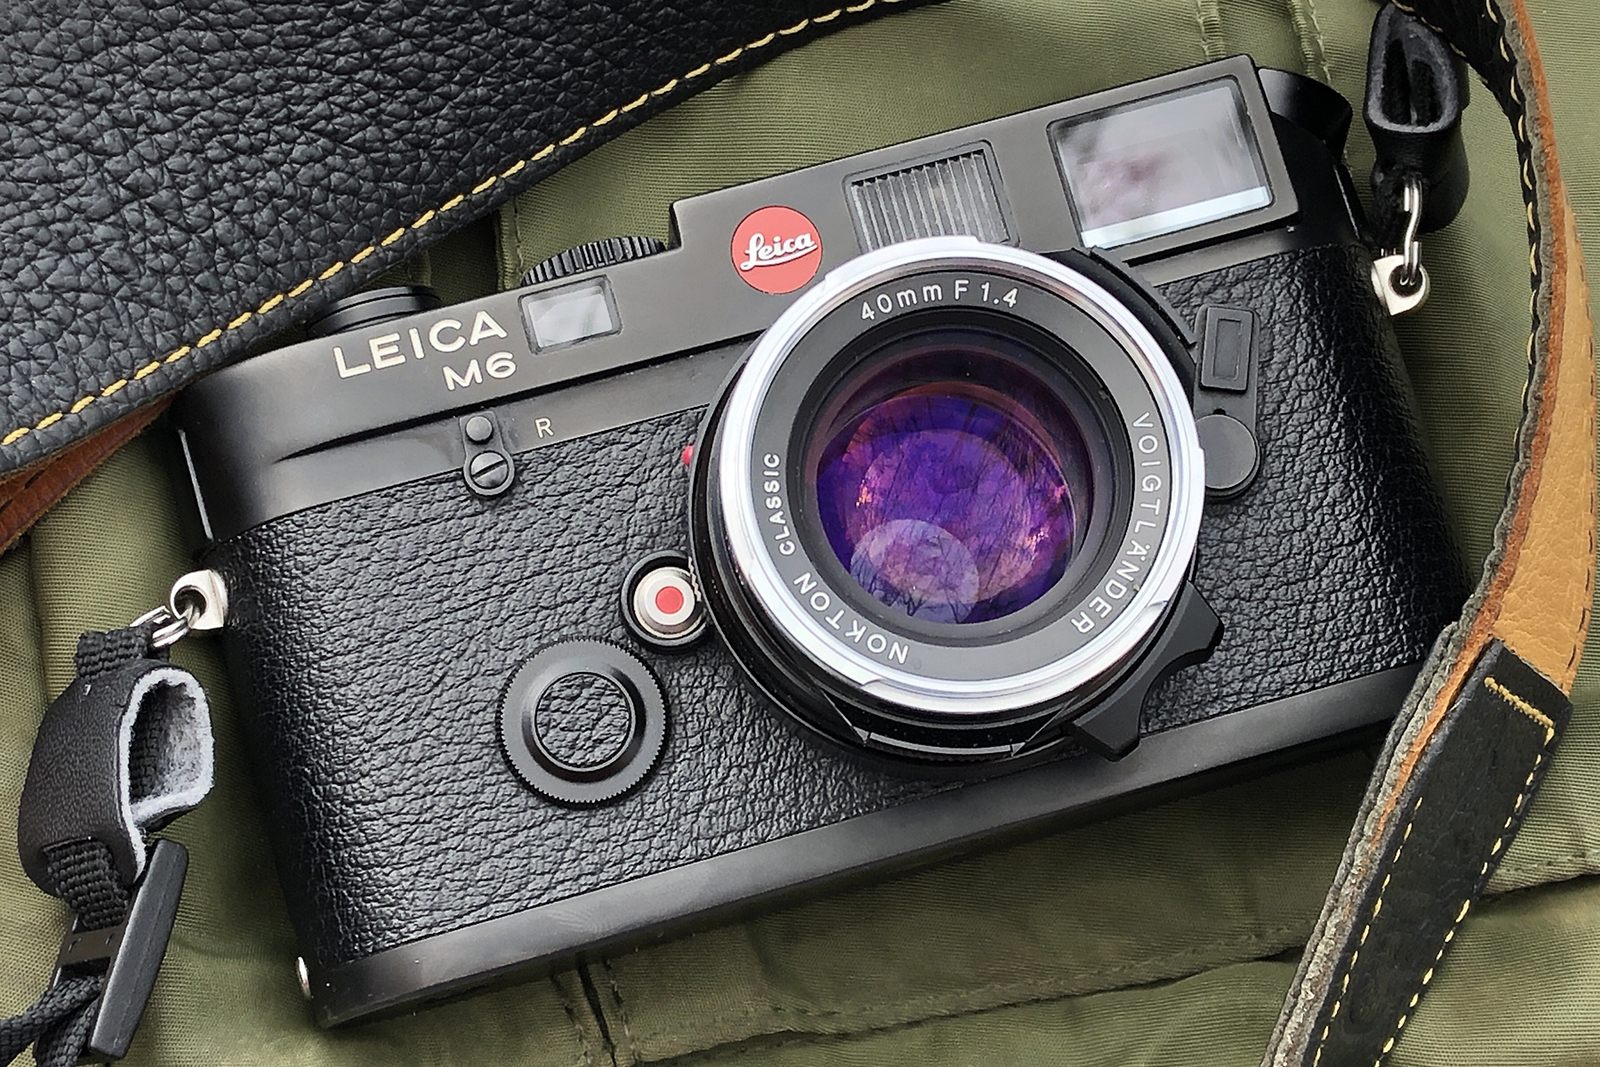 5 frames with a Leica M6 and Voigtlander 40mm f/1.4 – by Dean Vuksanovic